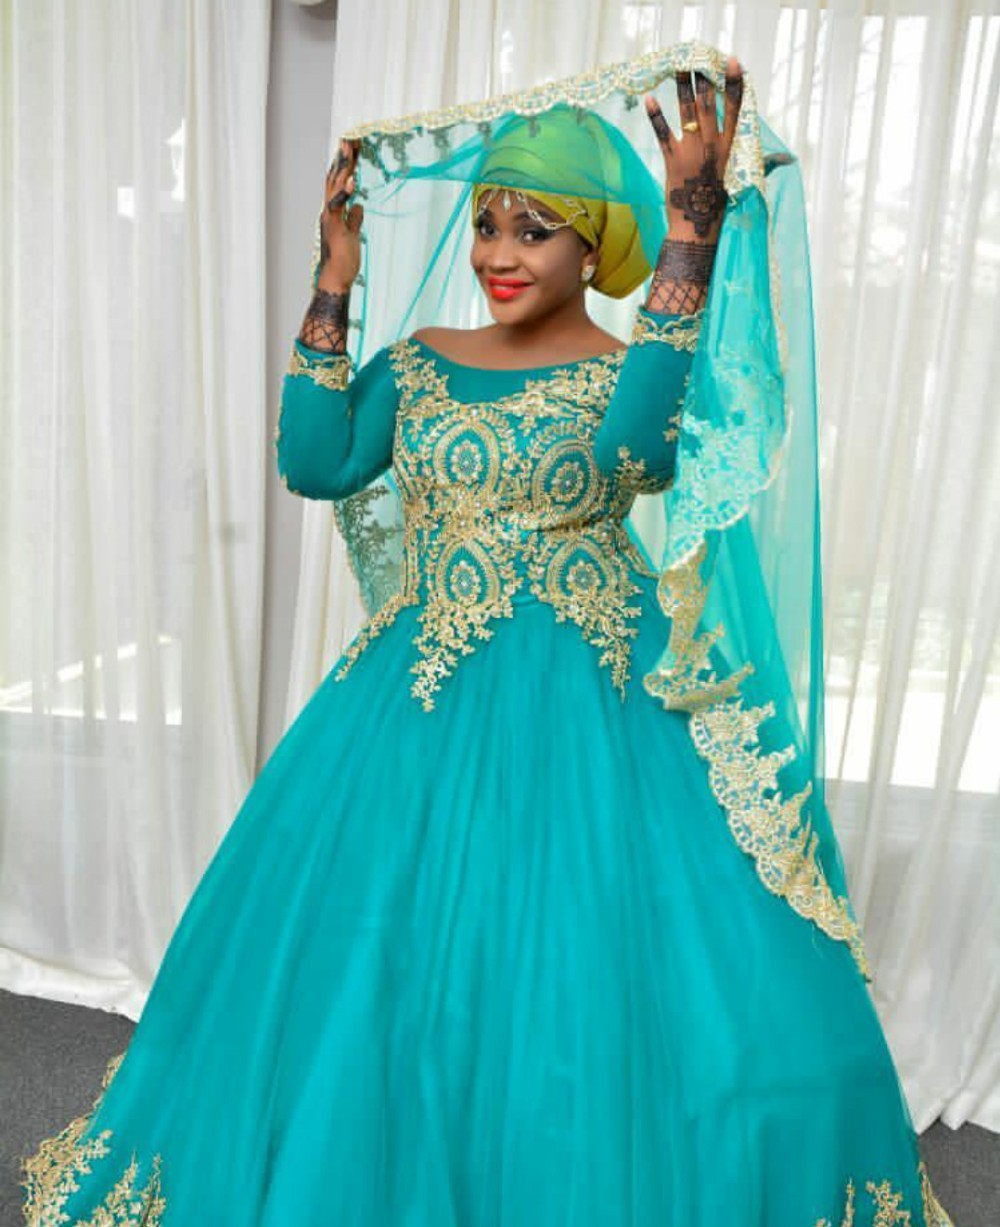 bridesmaid dresses durban to hire african wedding dress Wedding Dresses In South Africa Durban Women S